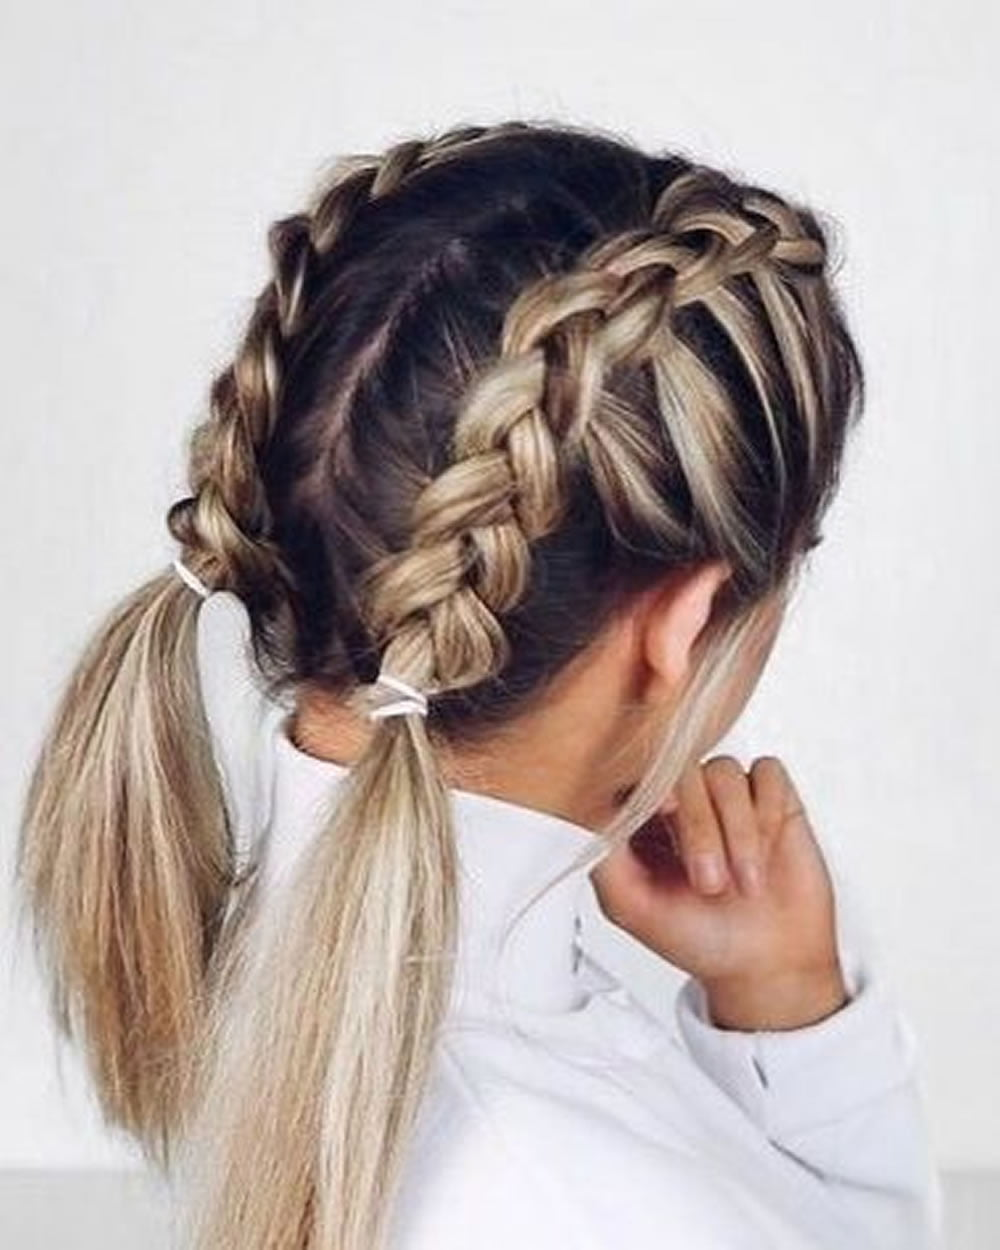 Watch Cool Updo Hairstyles for Women with Short Hair video